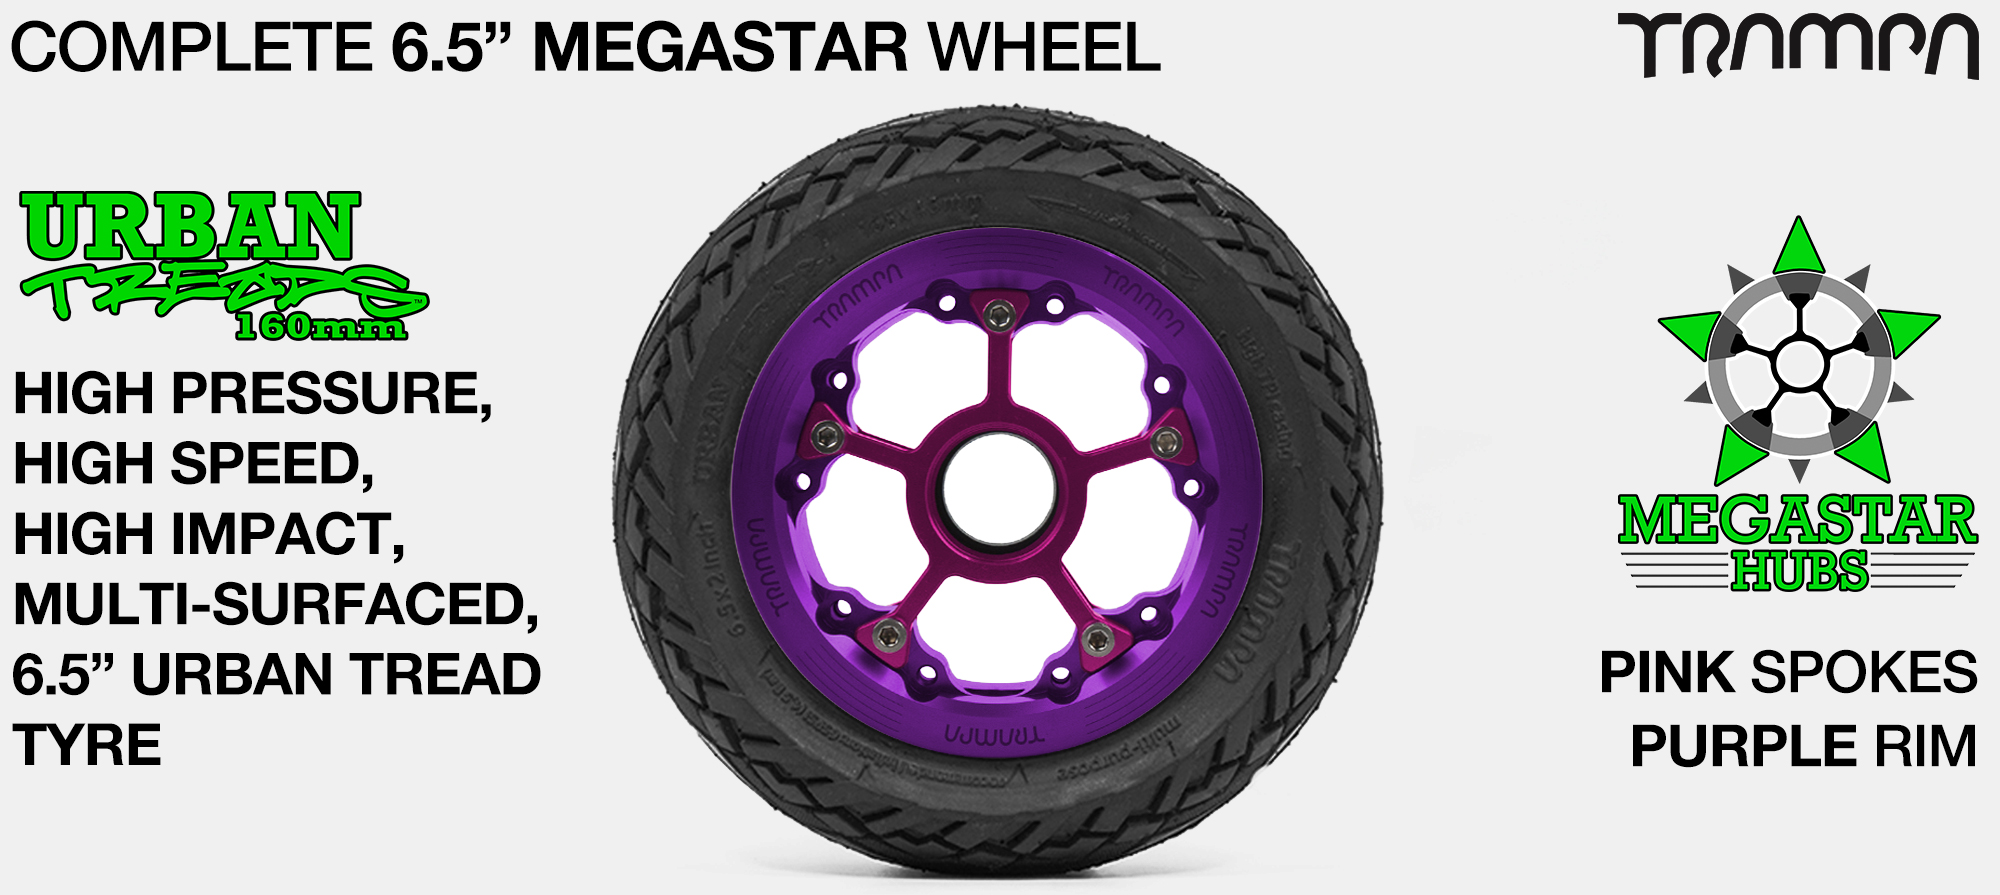 PURPLE MEGASTAR Rims with PINK Spokes & 6.5 Inch URBAN Treads Tyres